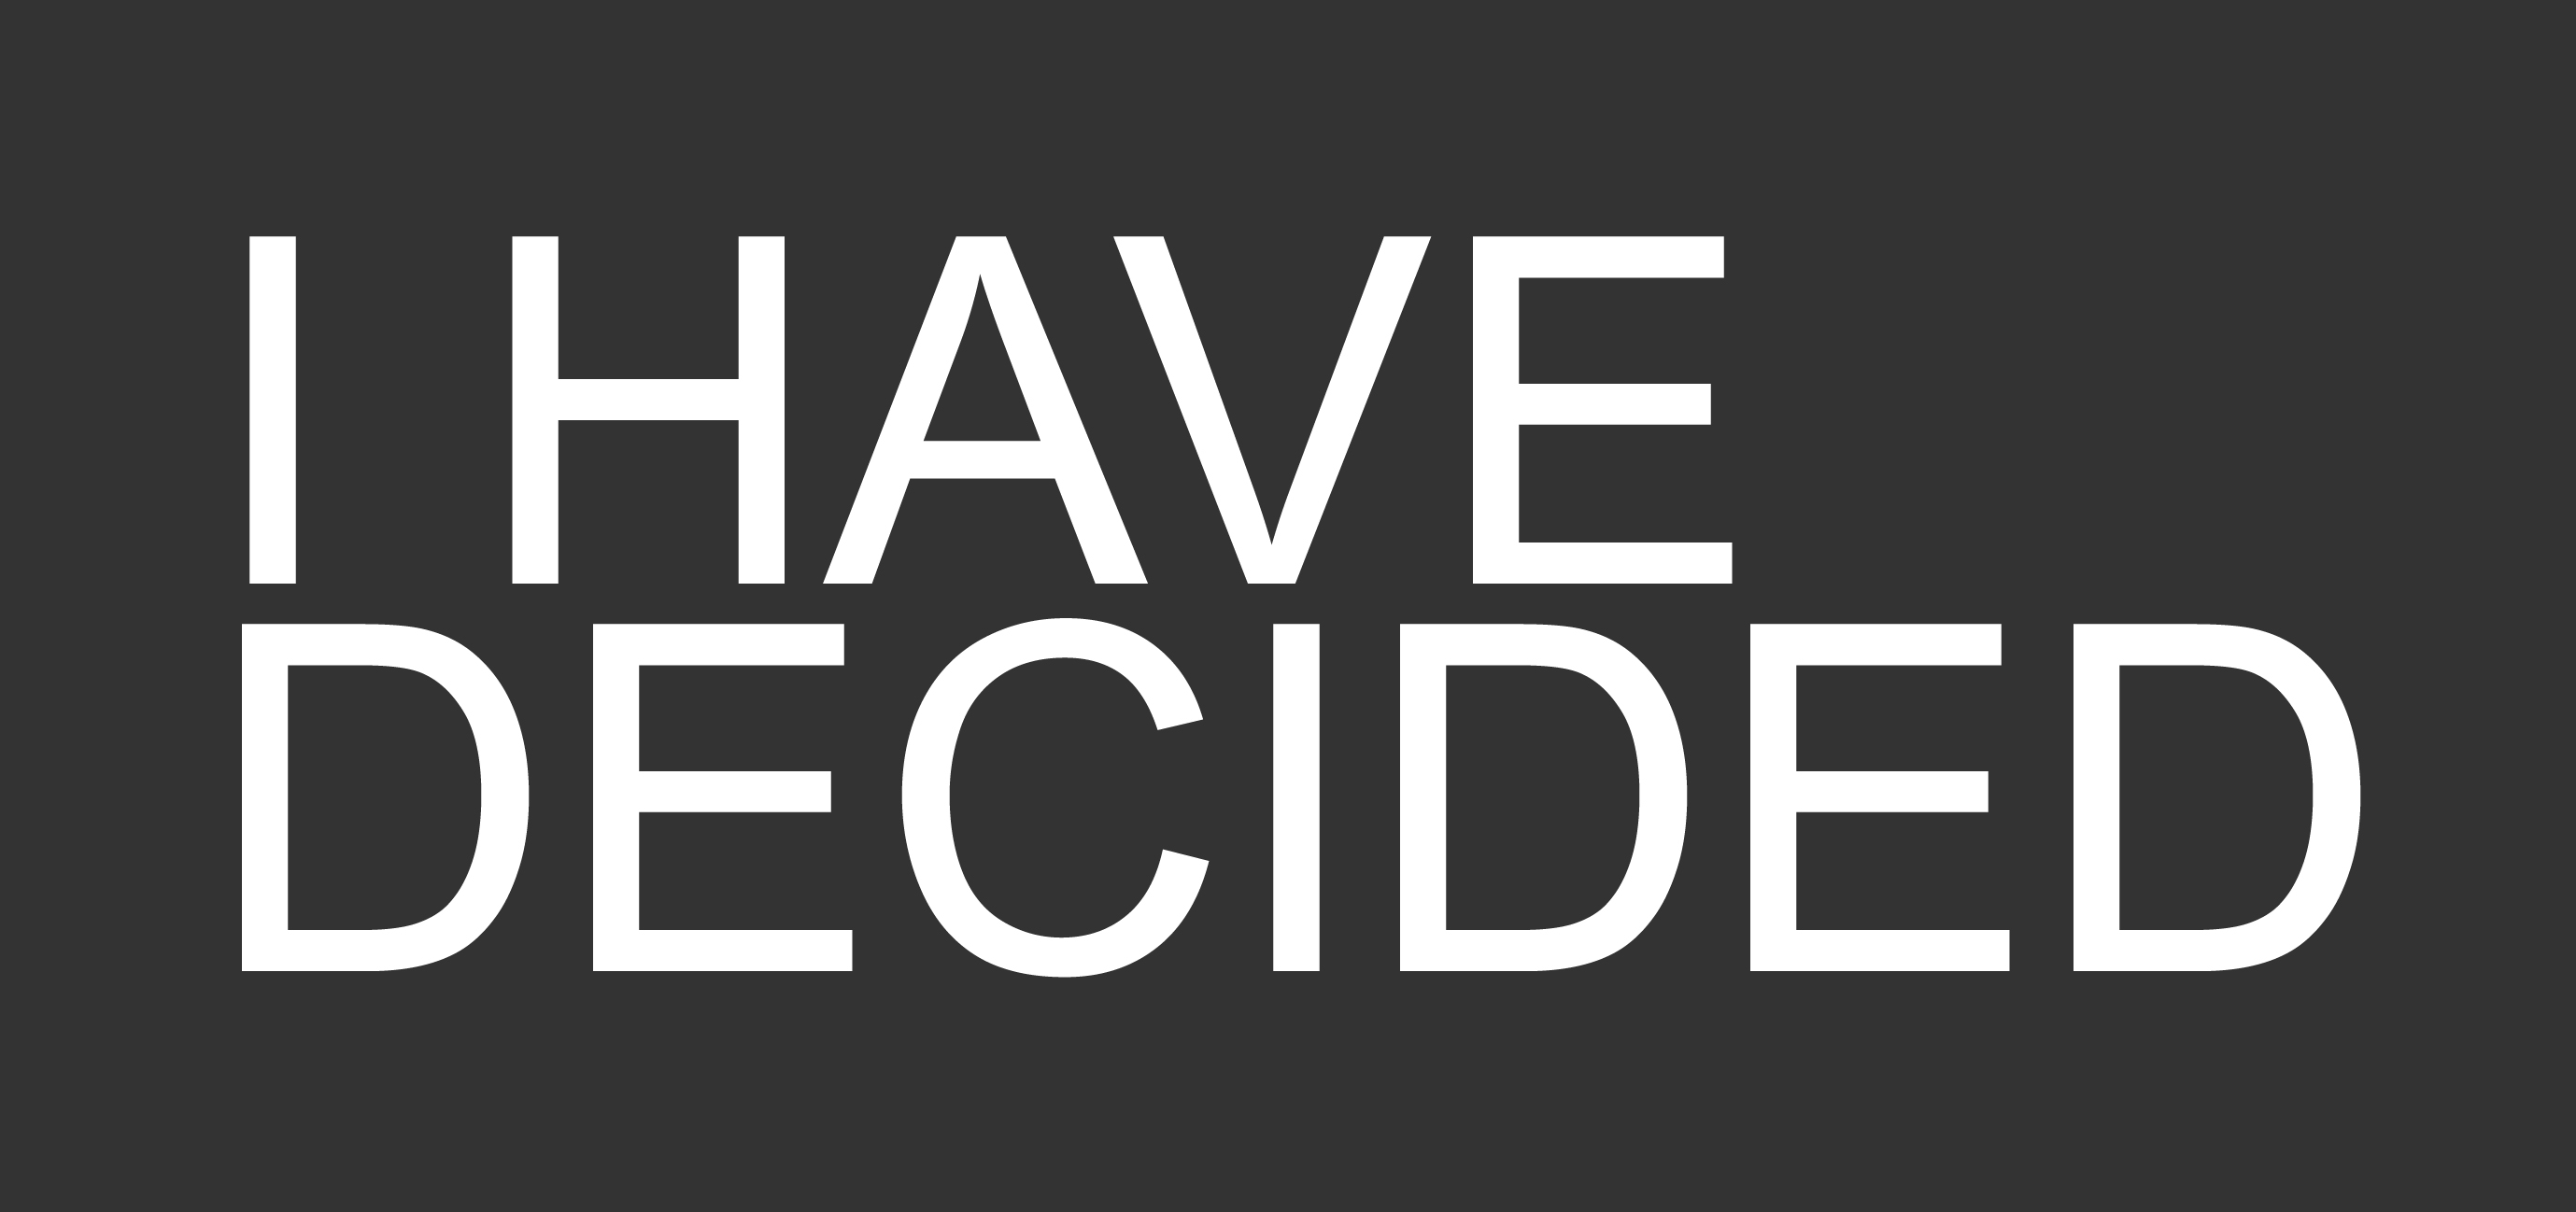 ihavedecided5